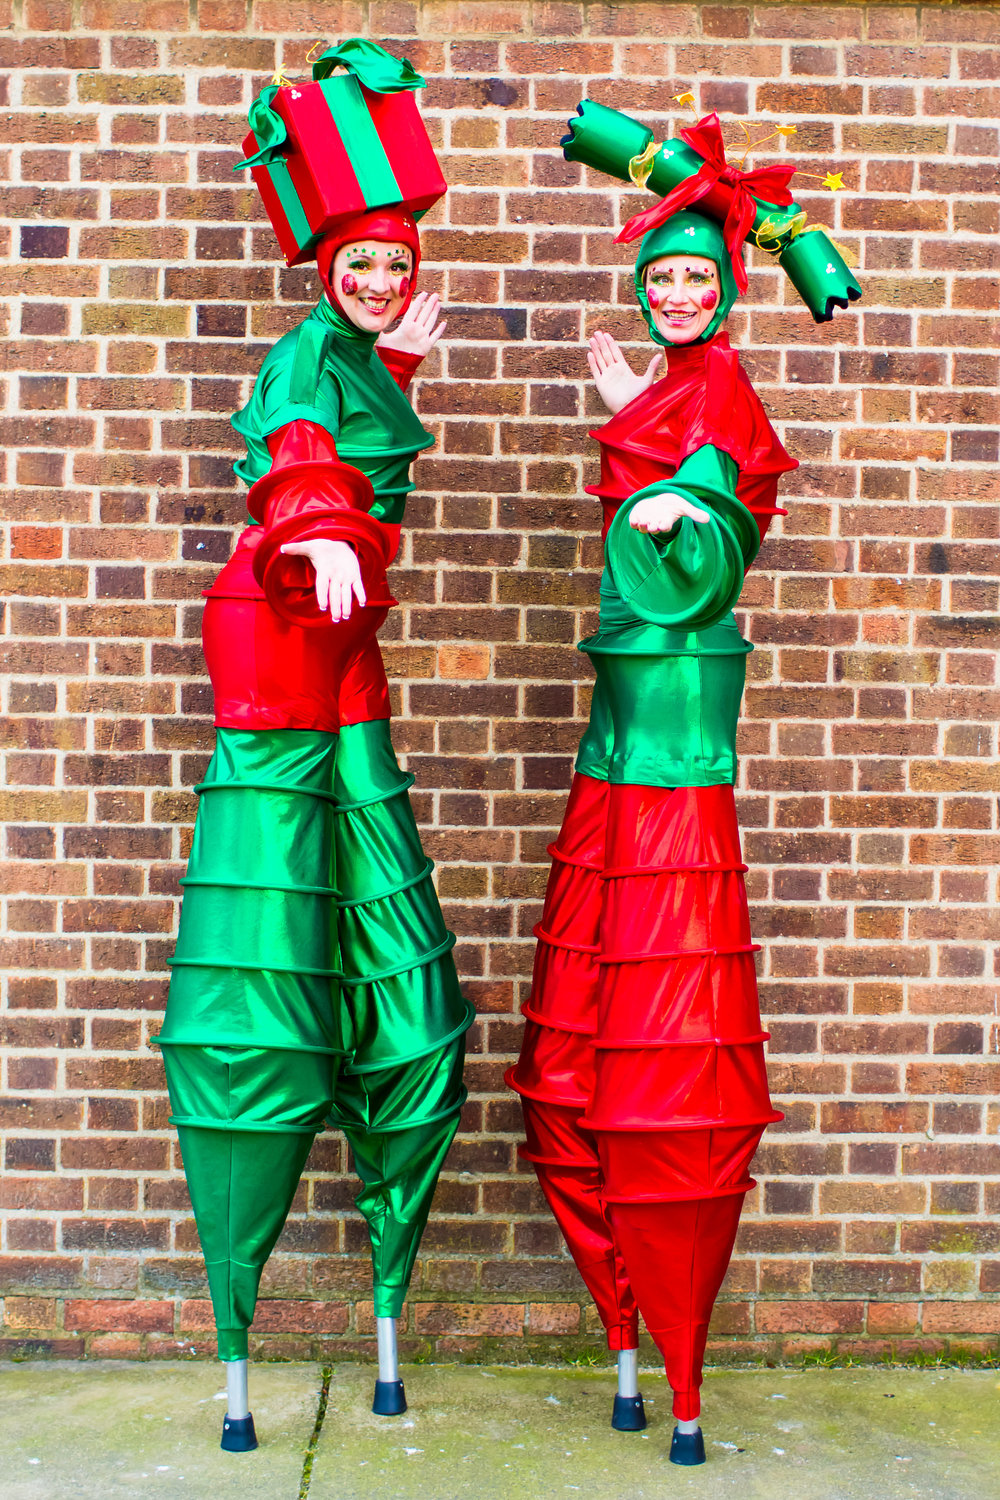 The Christmas Stilt Walkers at Wall.jpg